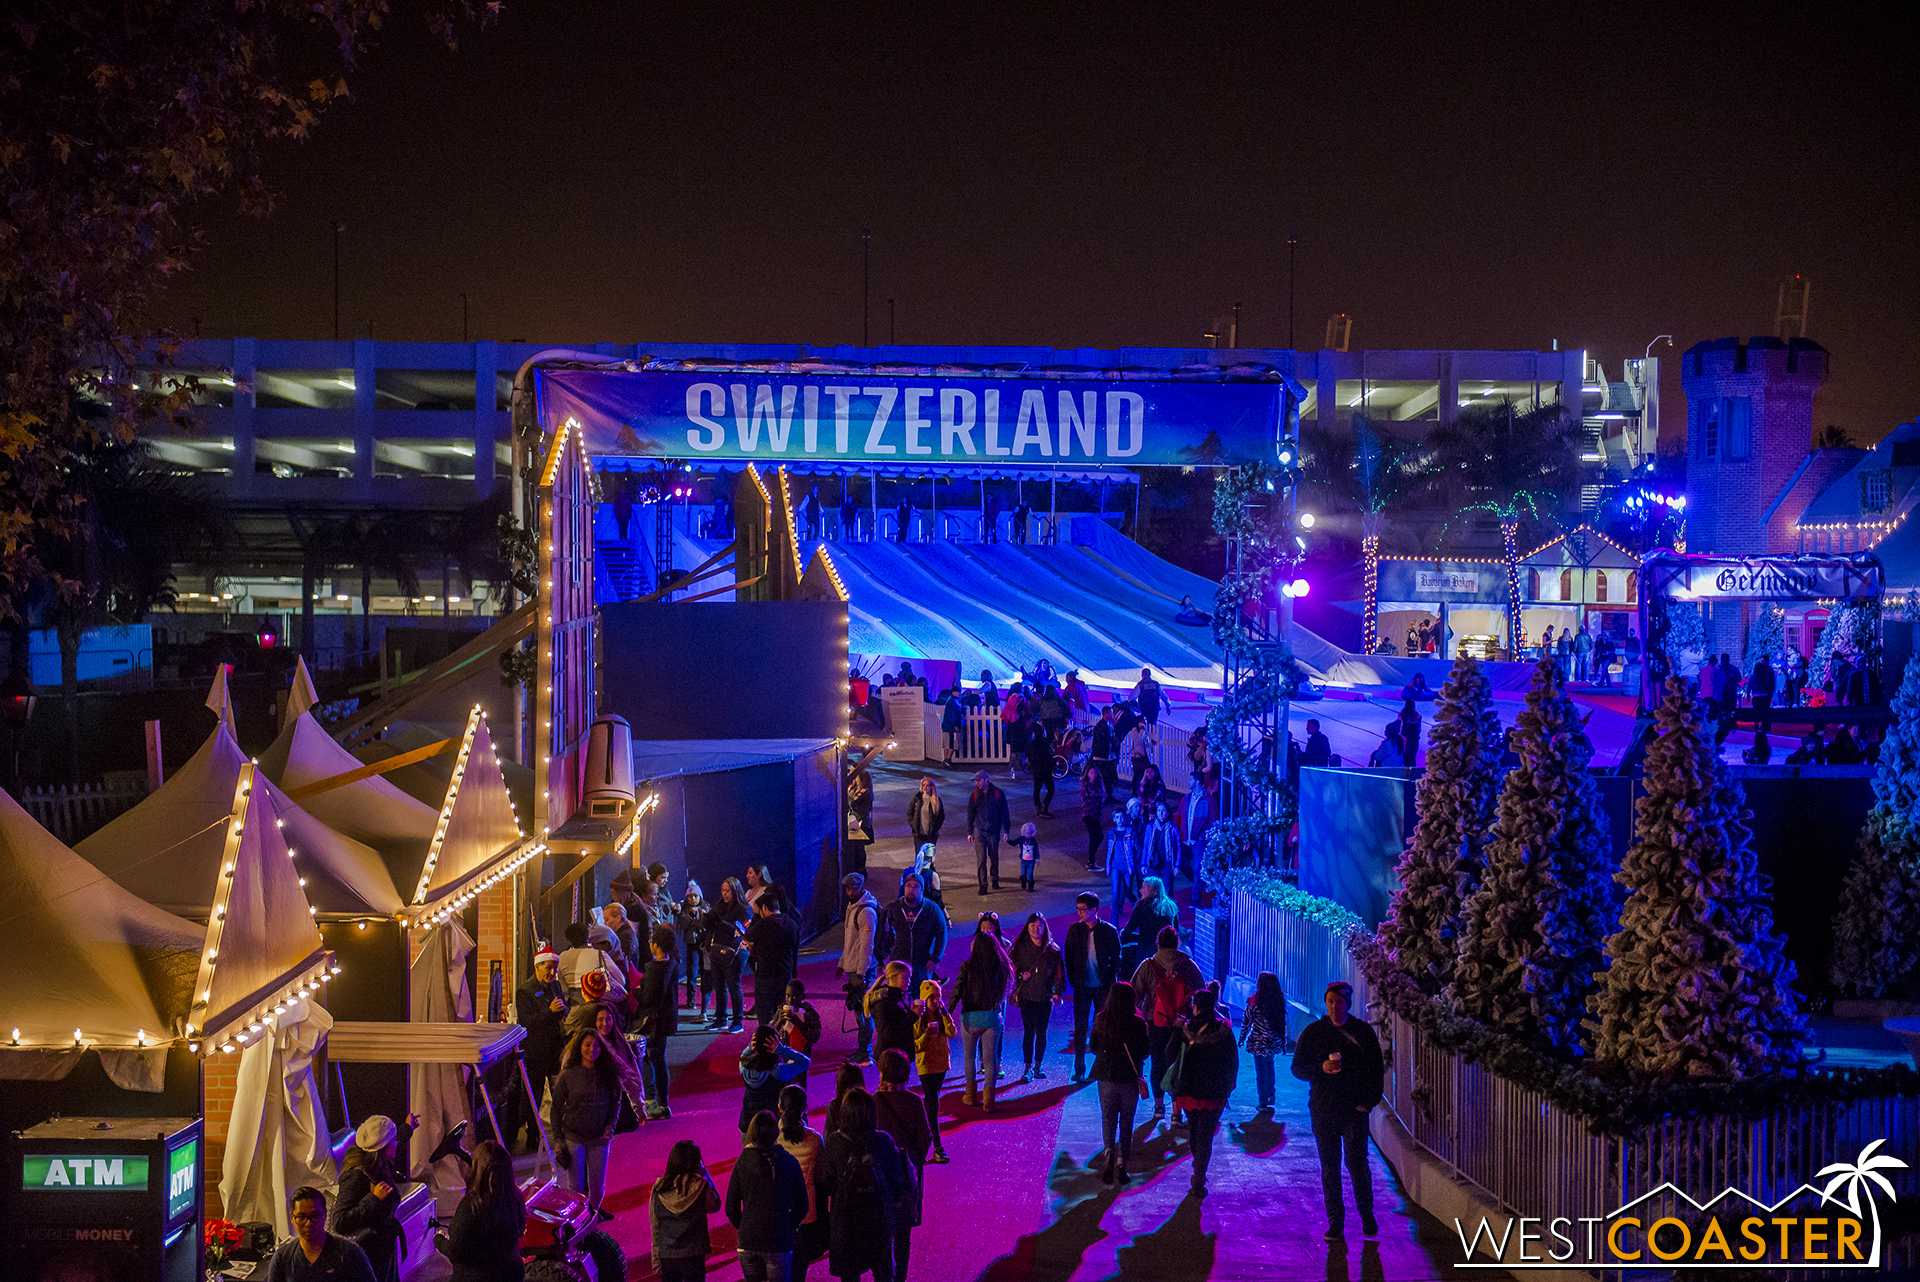 This sign is a bit misleading, since the photo is taken from within the Switzerland area already, but the Christmas village feel of this year's Chill is more immersive than last.